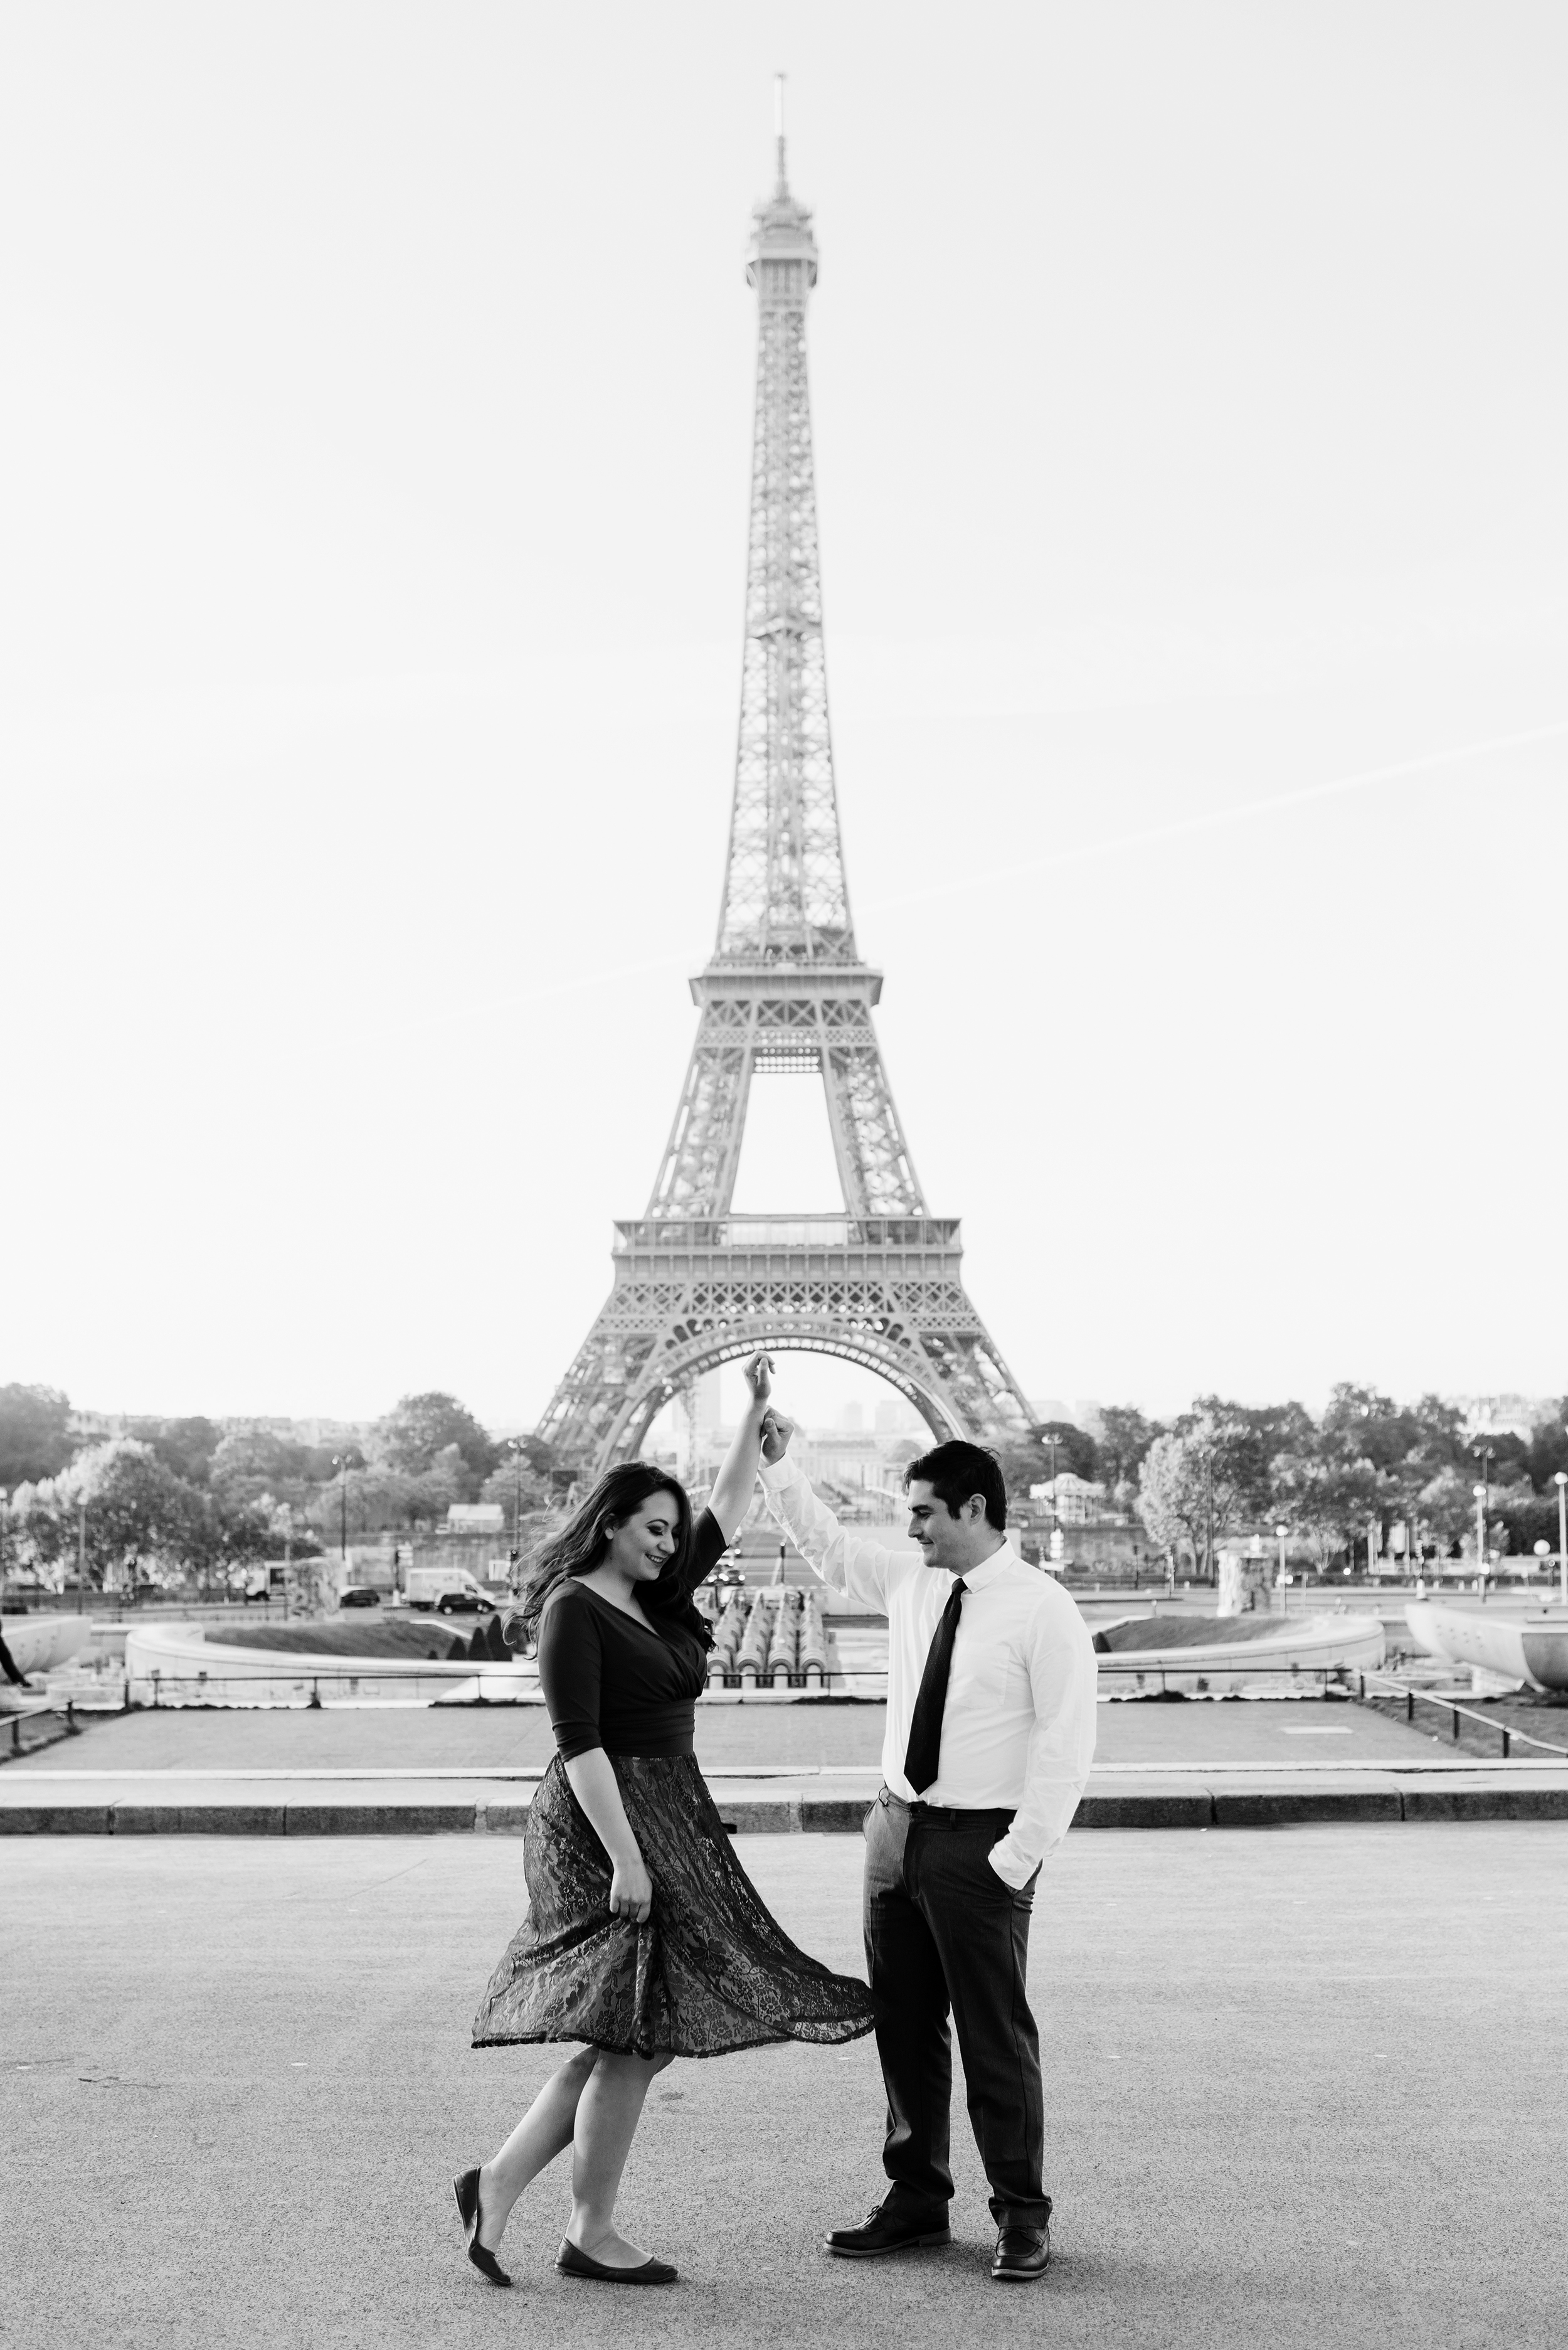 Couple-photoshoot-Anniversary-Paris-Eiffel-Tower-Trocadero050.jpg